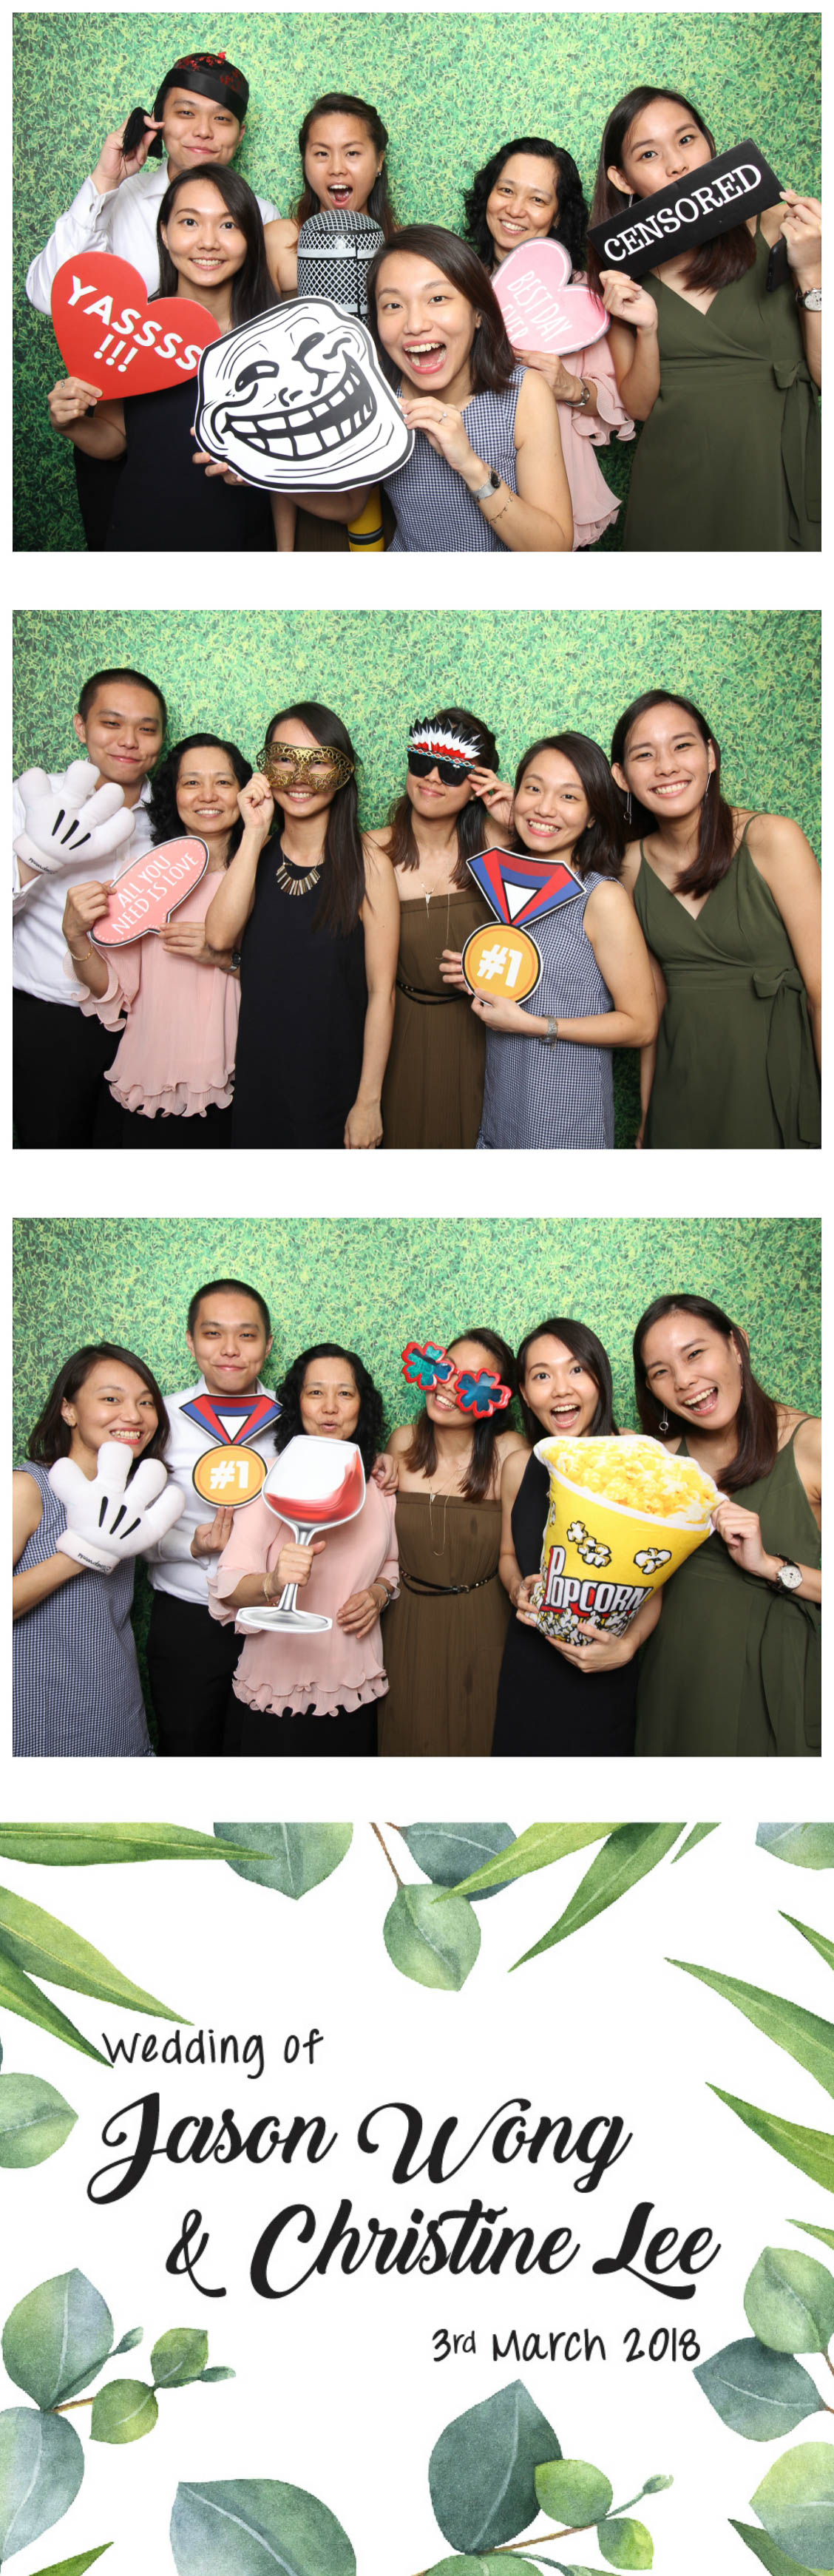 Photobooth 0302-36